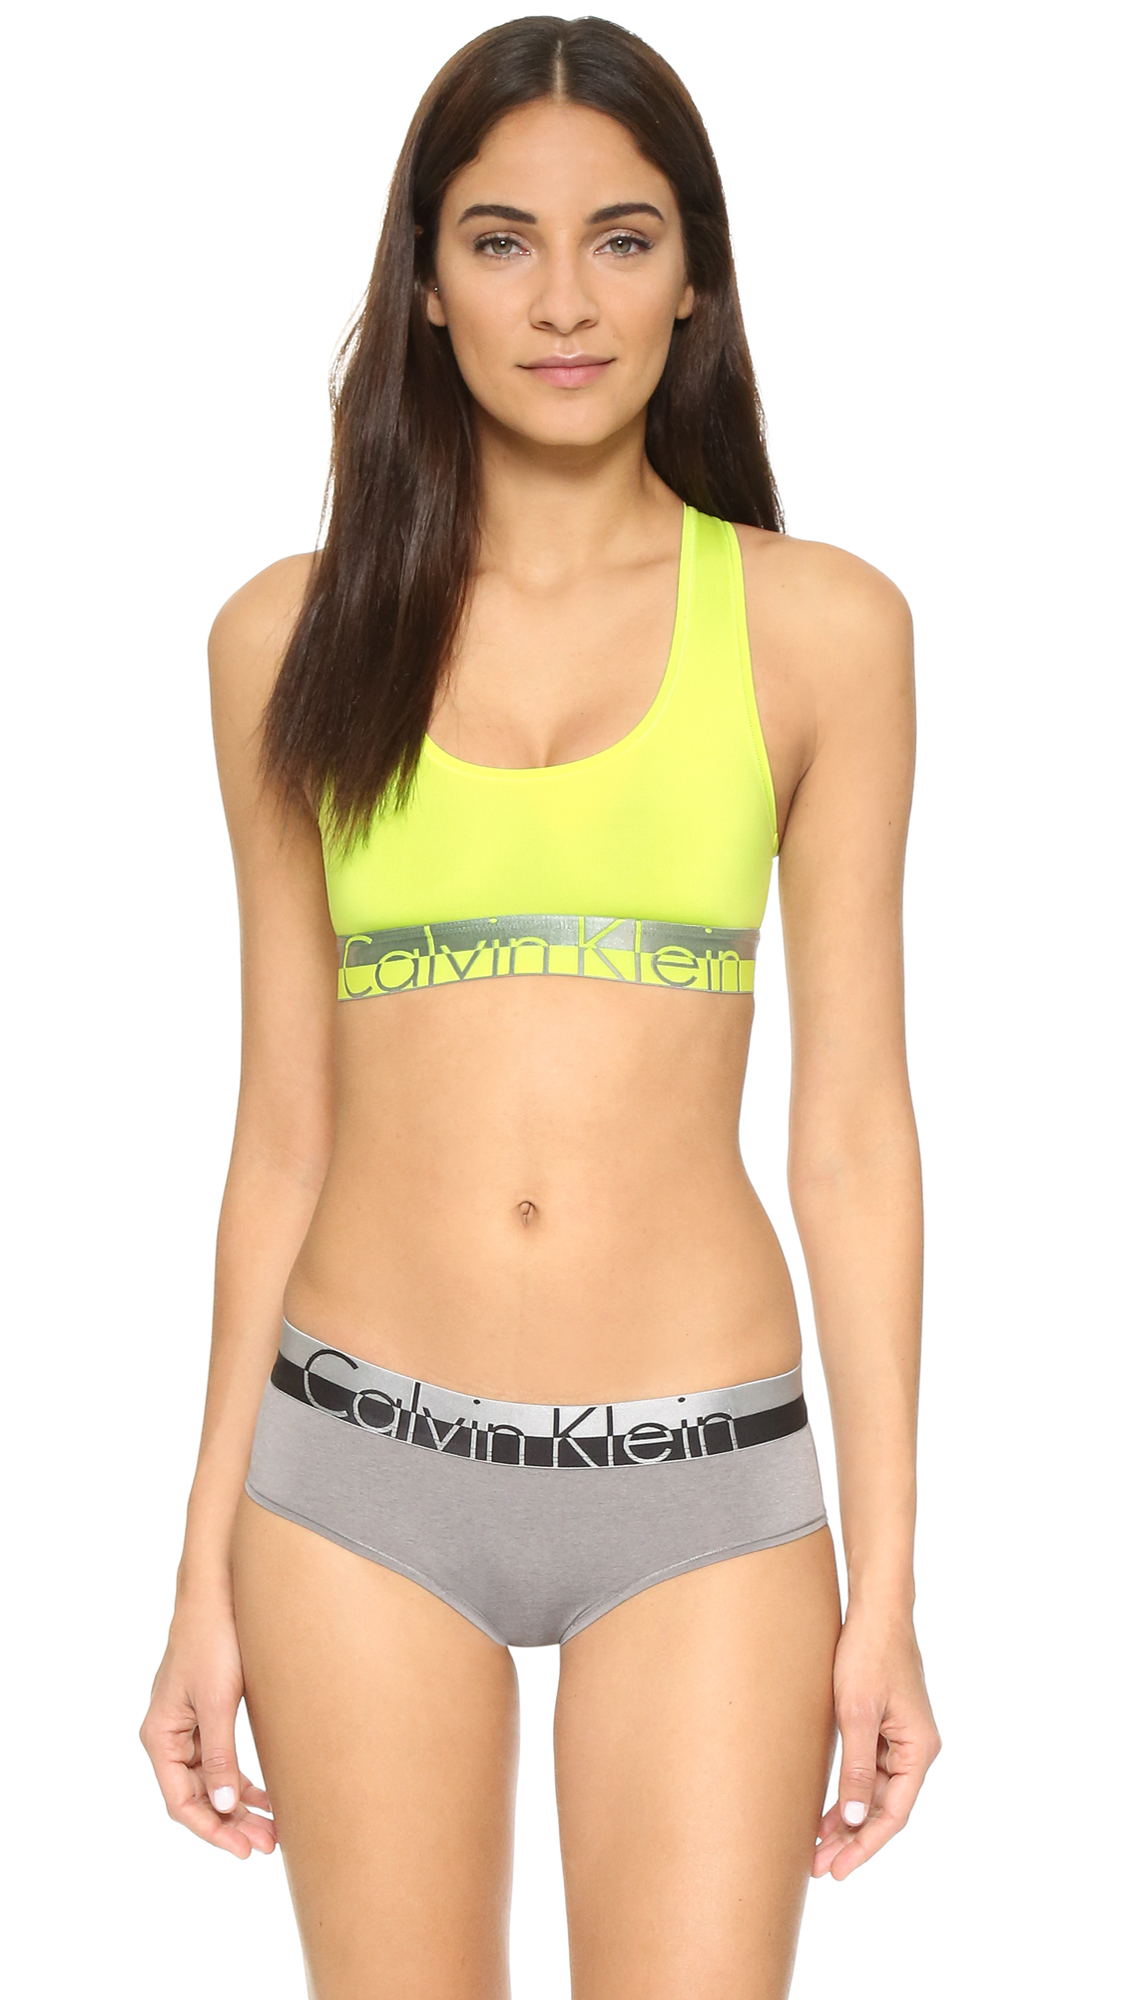 bcab6a17aad Lyst - Calvin Klein Magnetic Force Racer Back Bralette in Yellow